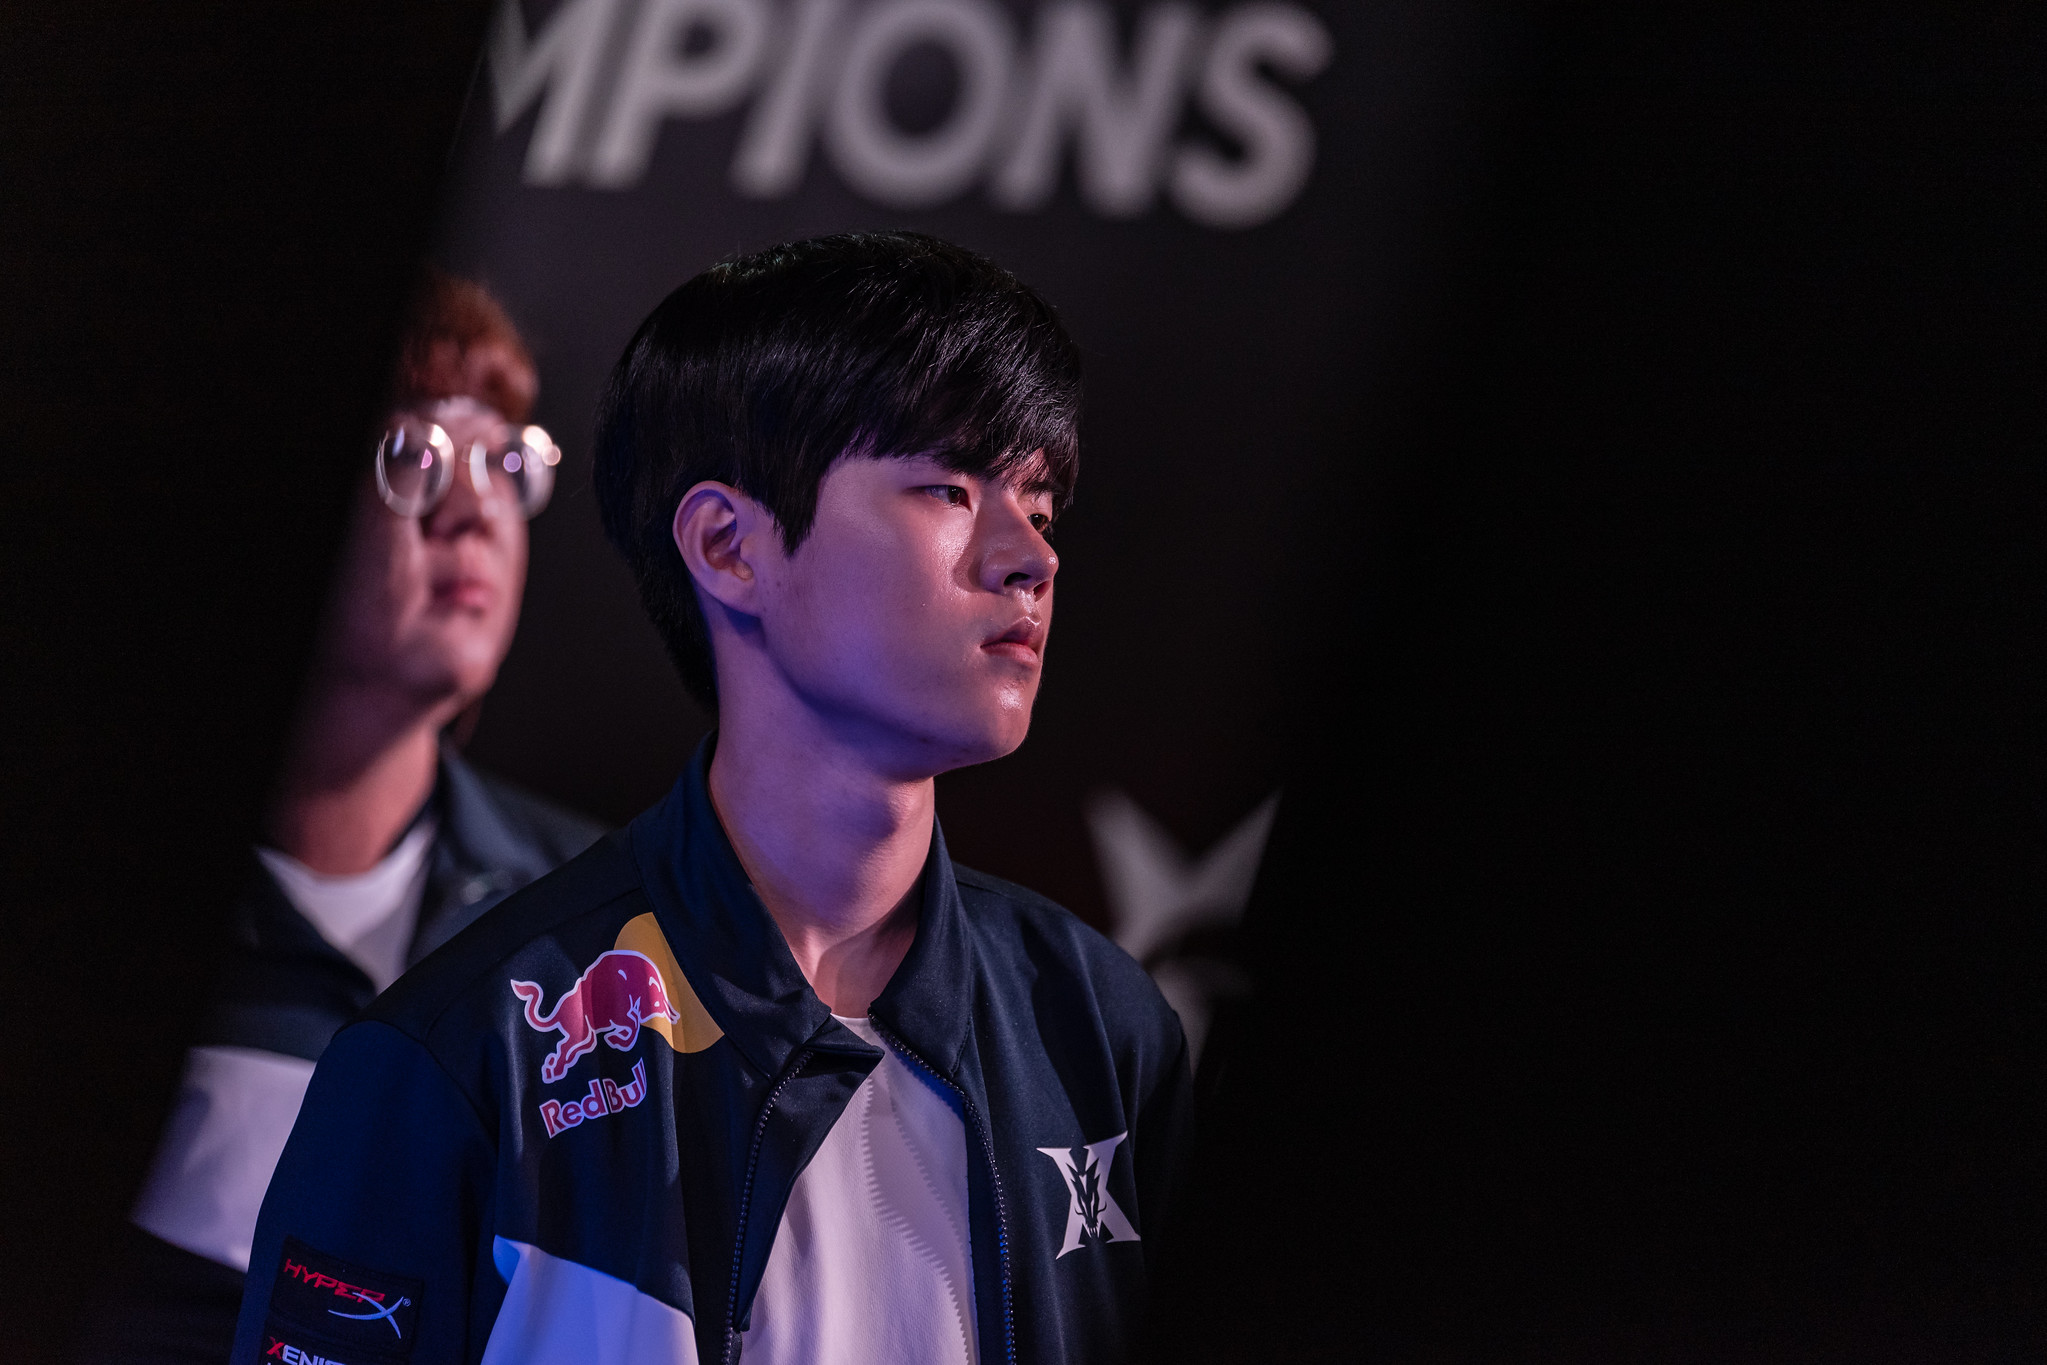 DragonX win the battle for third place in LCK, ending KT Rolster's 8-game win streak